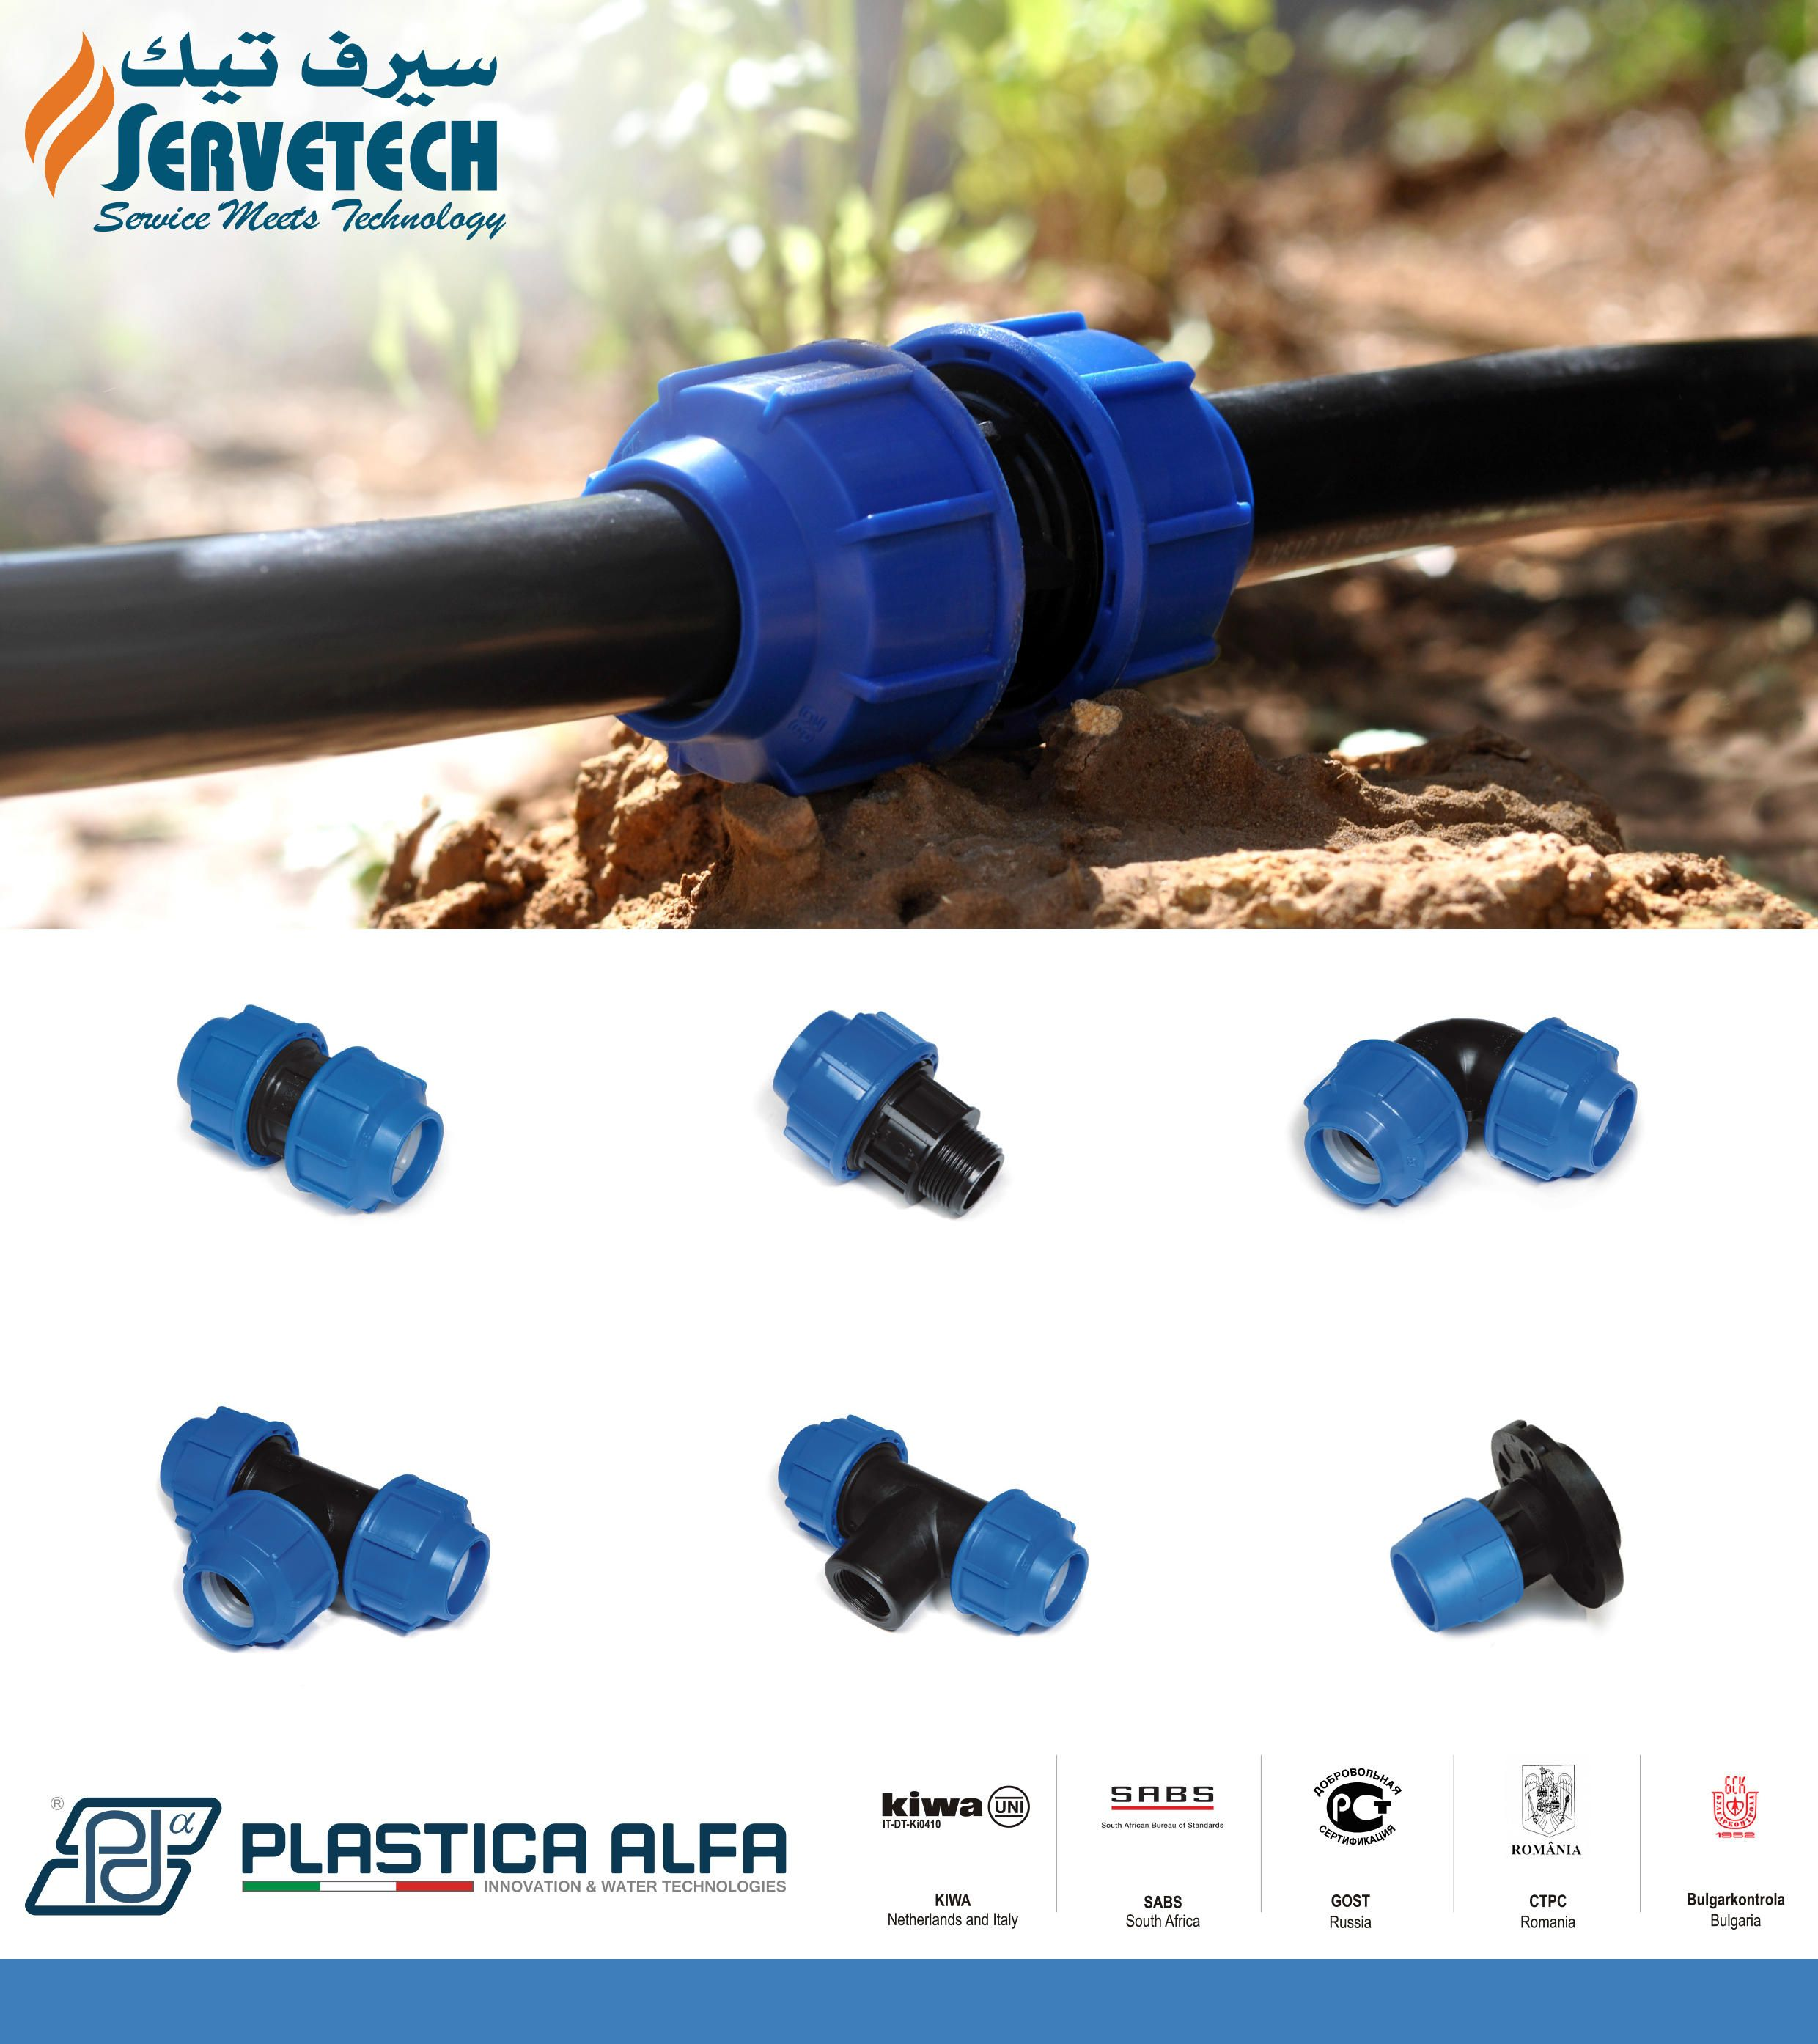 Servetech Is The Authorized Distributor Of Plastica Alfa In The Middle East Market Plastica Alfa From Italy Manufactures Black Line Fittings Are Used To Conne